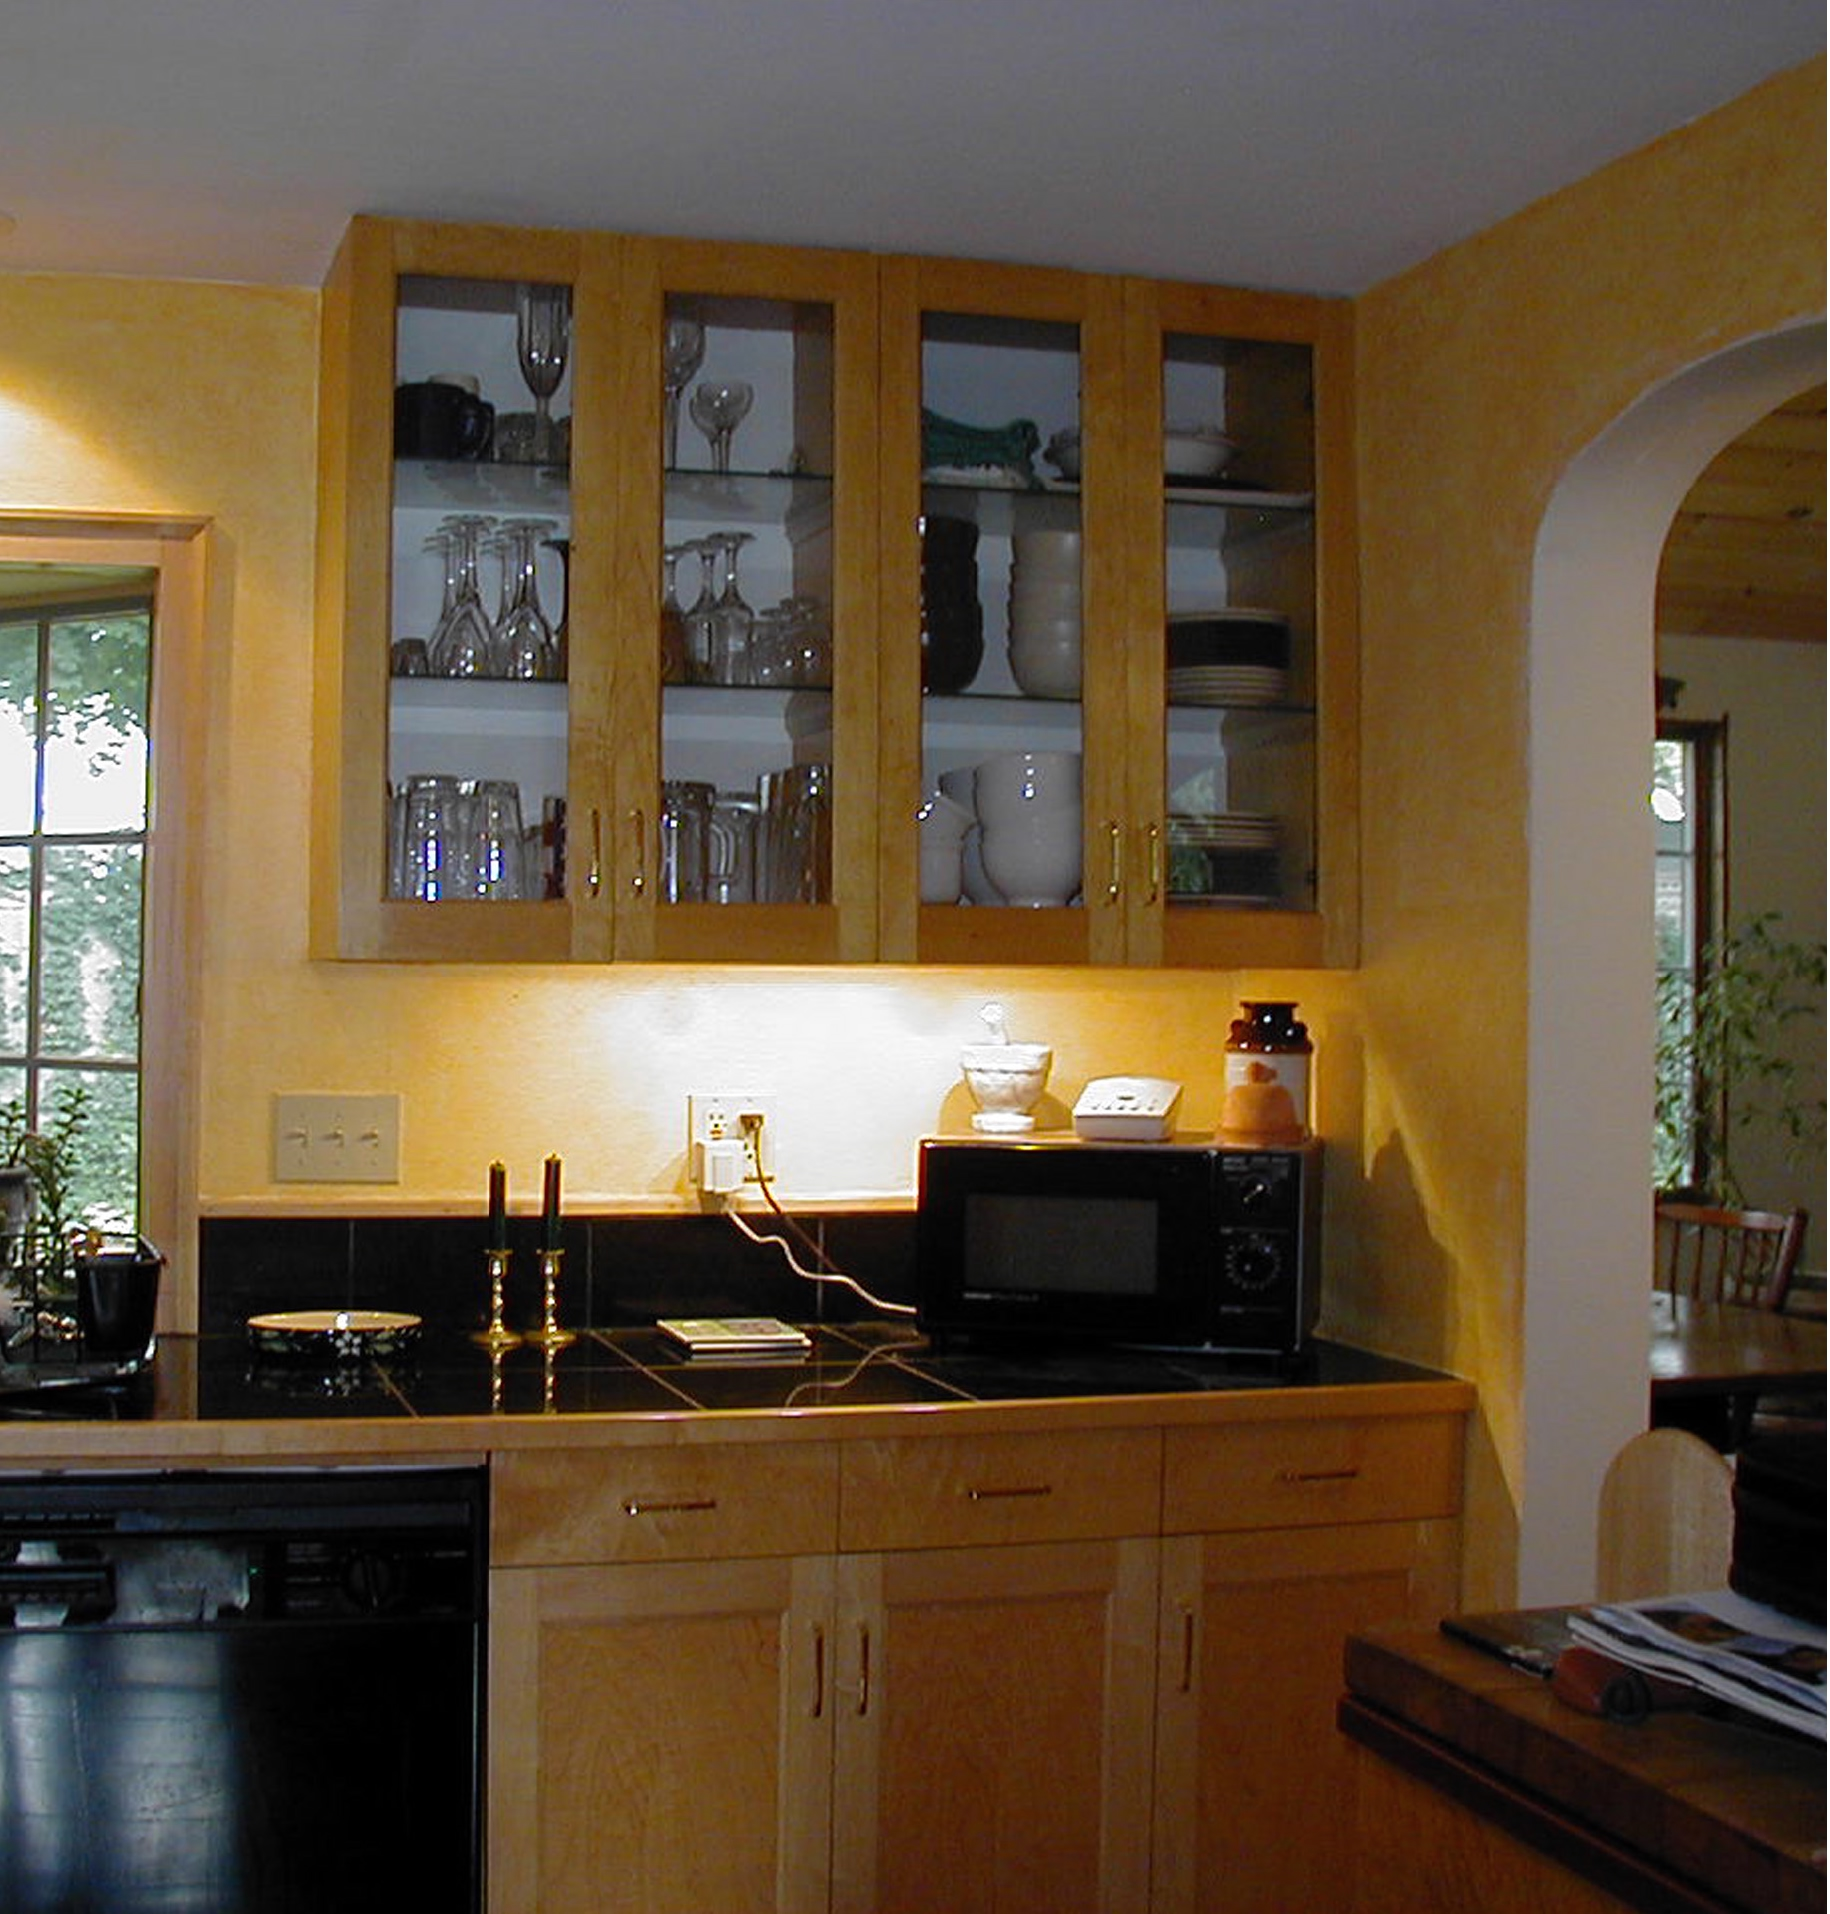 Kitchen cabinets white with glass doors cabinet doors for Black friday deals on kitchen cabinets